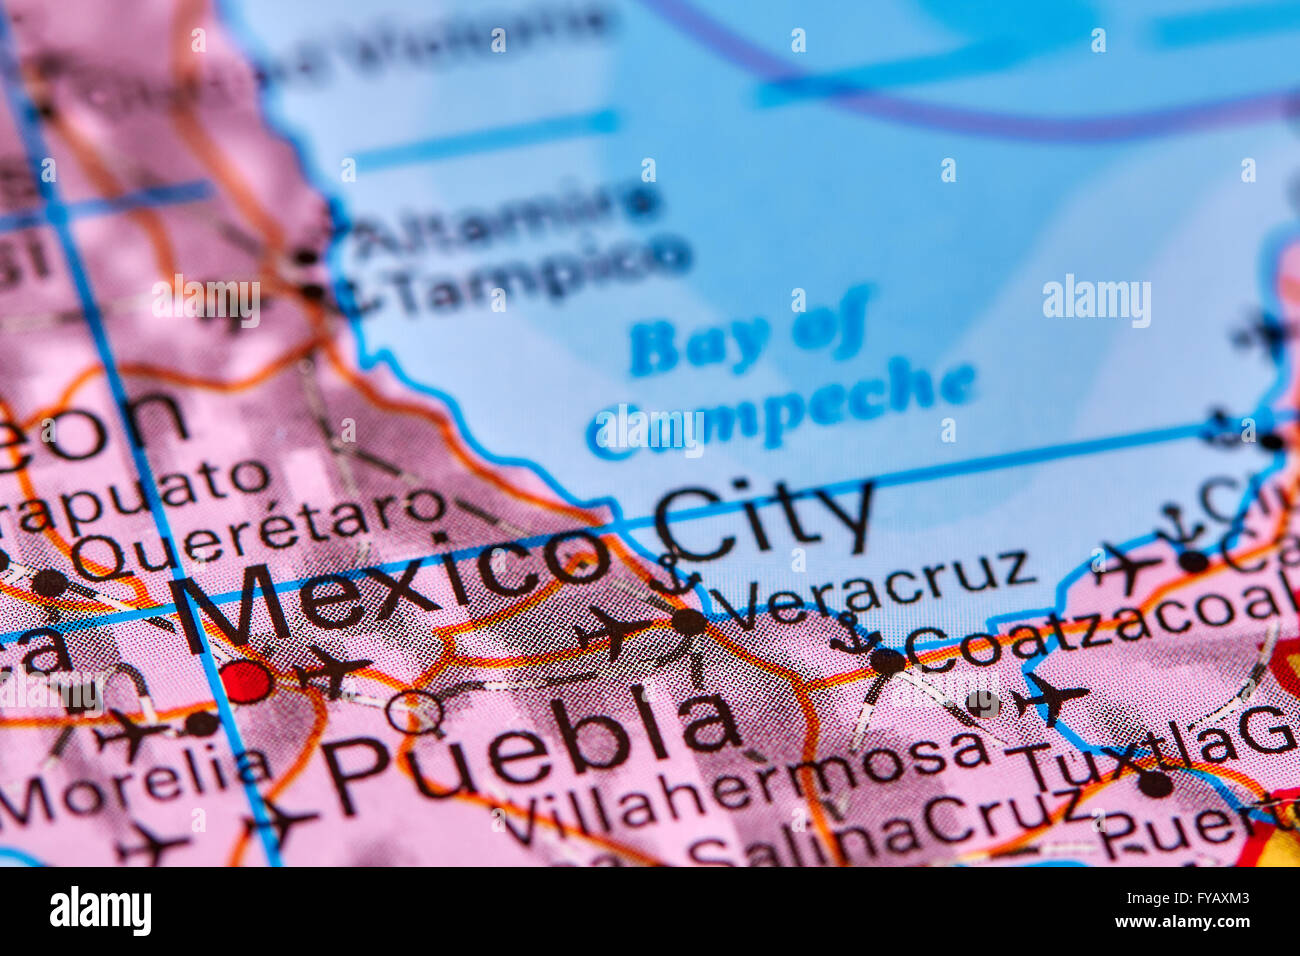 Mexico City Capital Of Mexico On The World Map Photo – Mexico City on Map